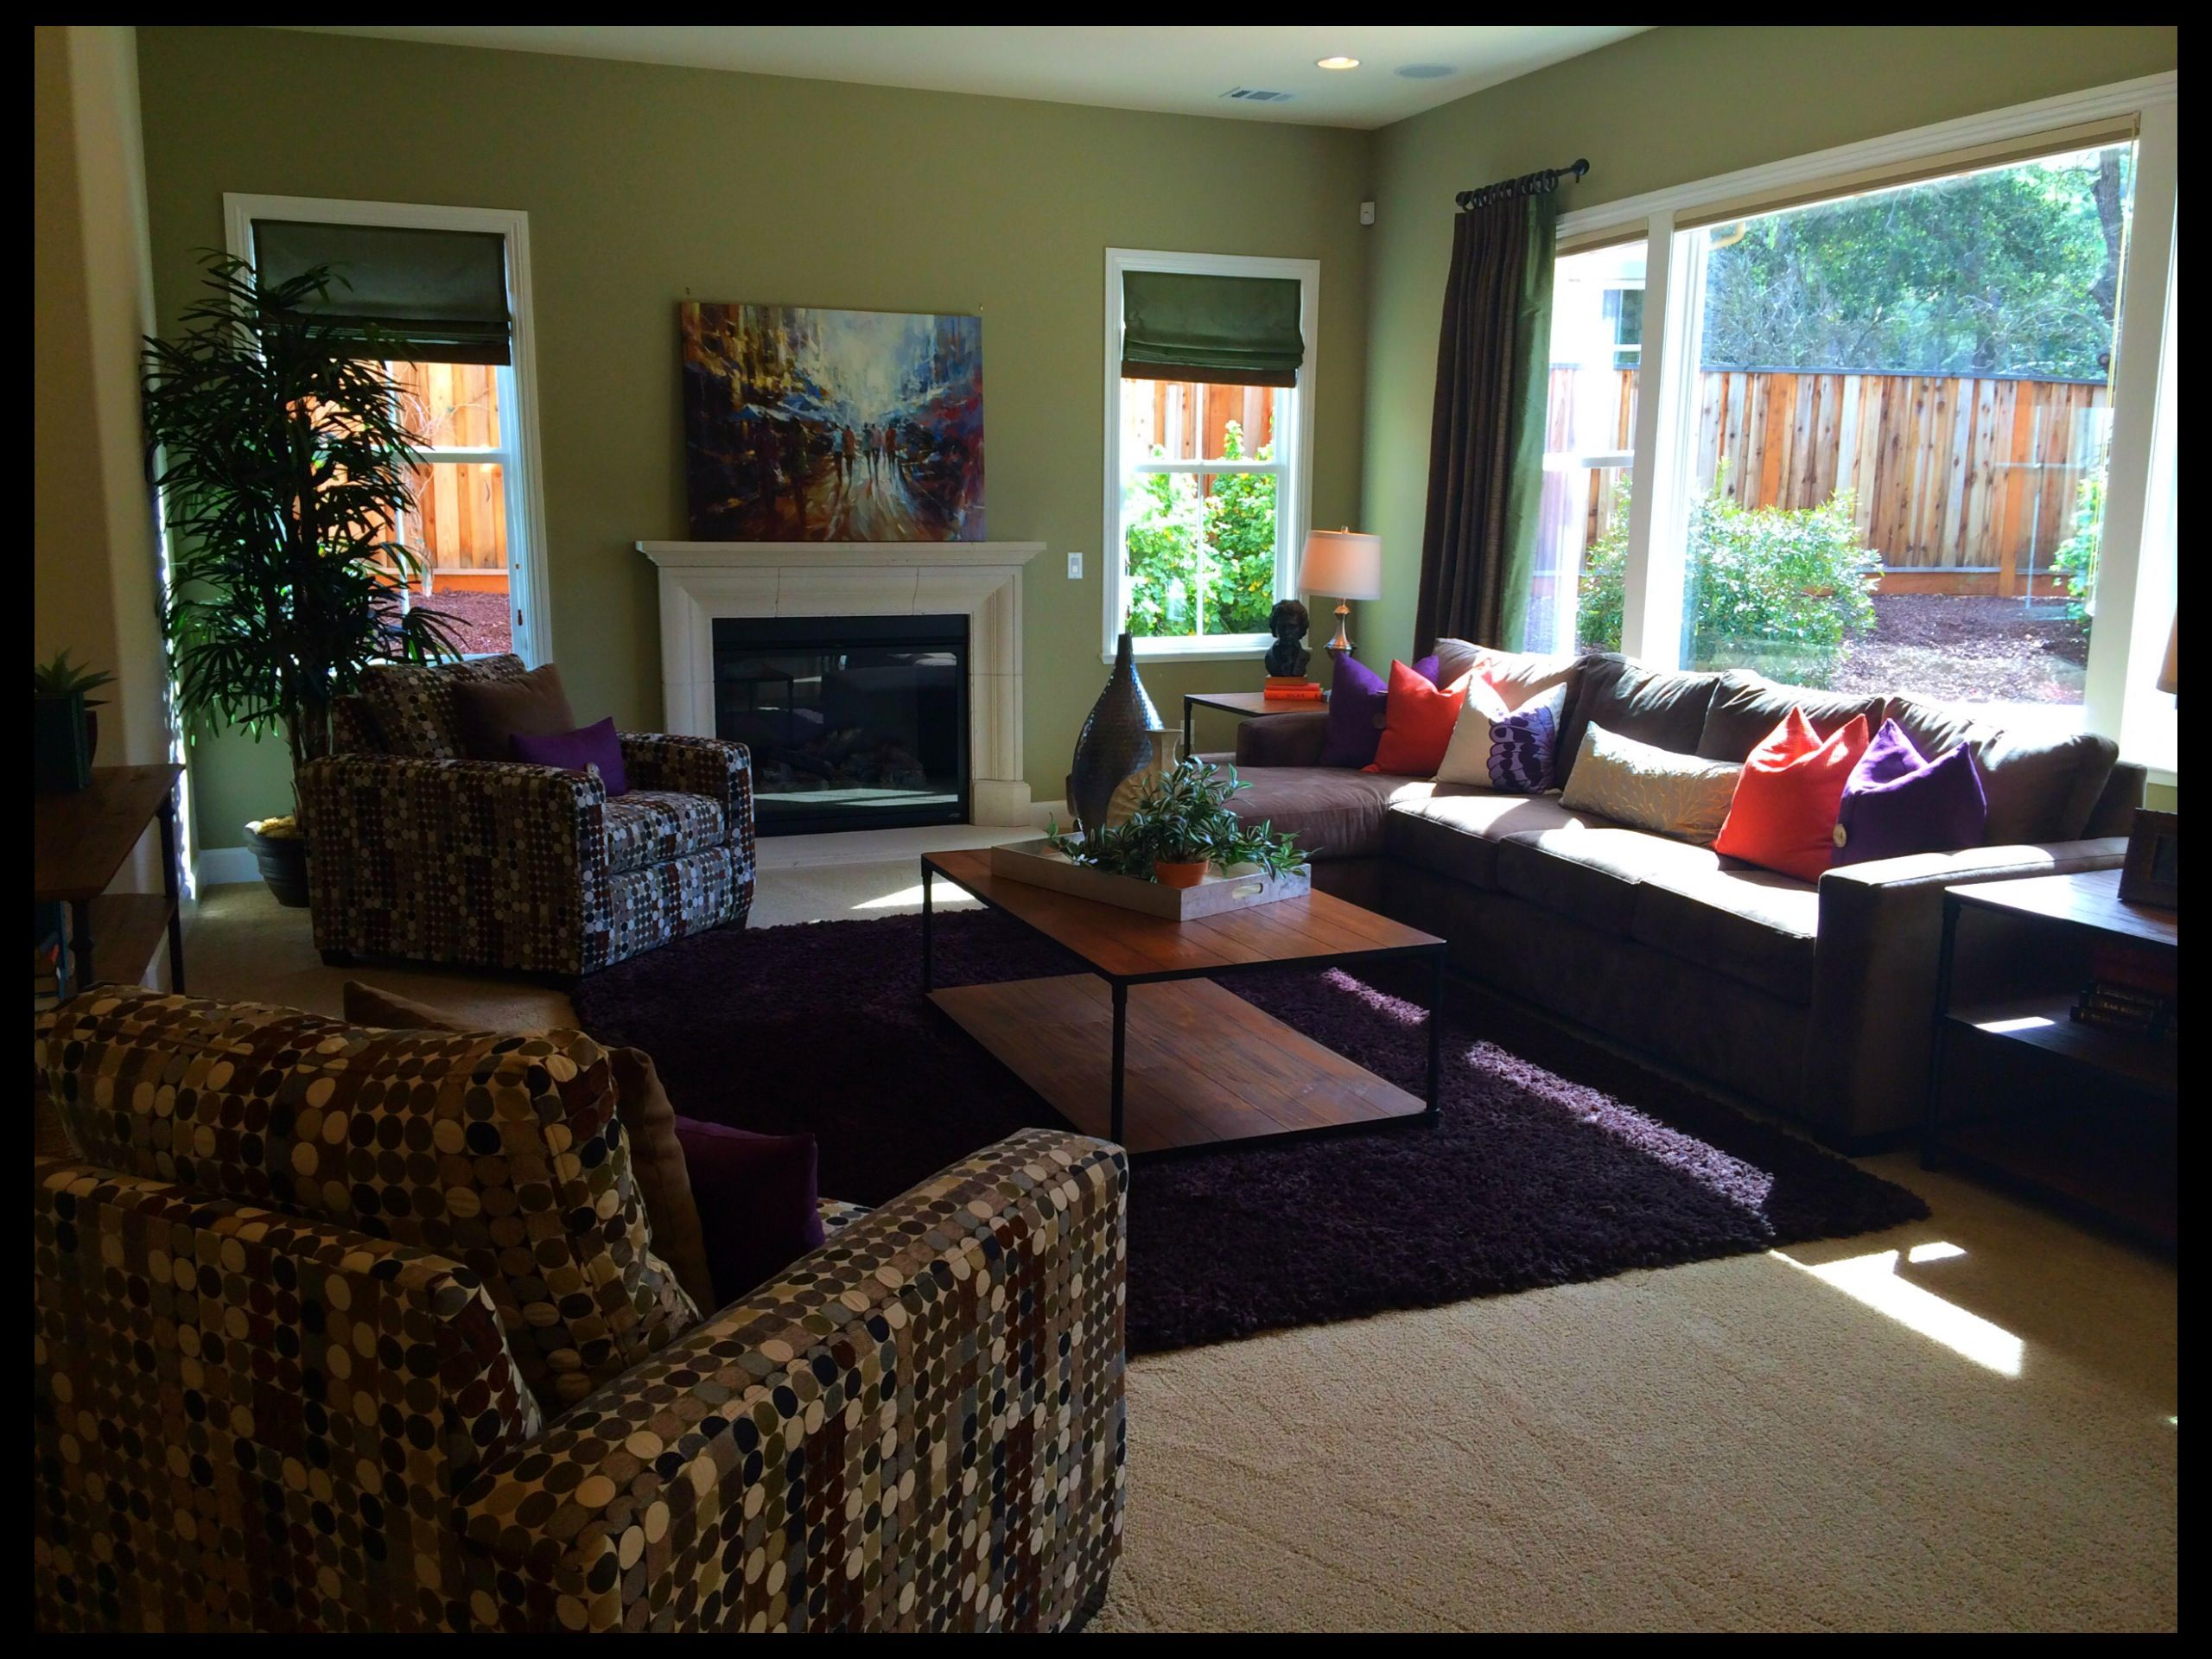 Builder Project In Hayward California Done By Home Select In Danville Ca Livingroom Home Danville Ca Hayward California